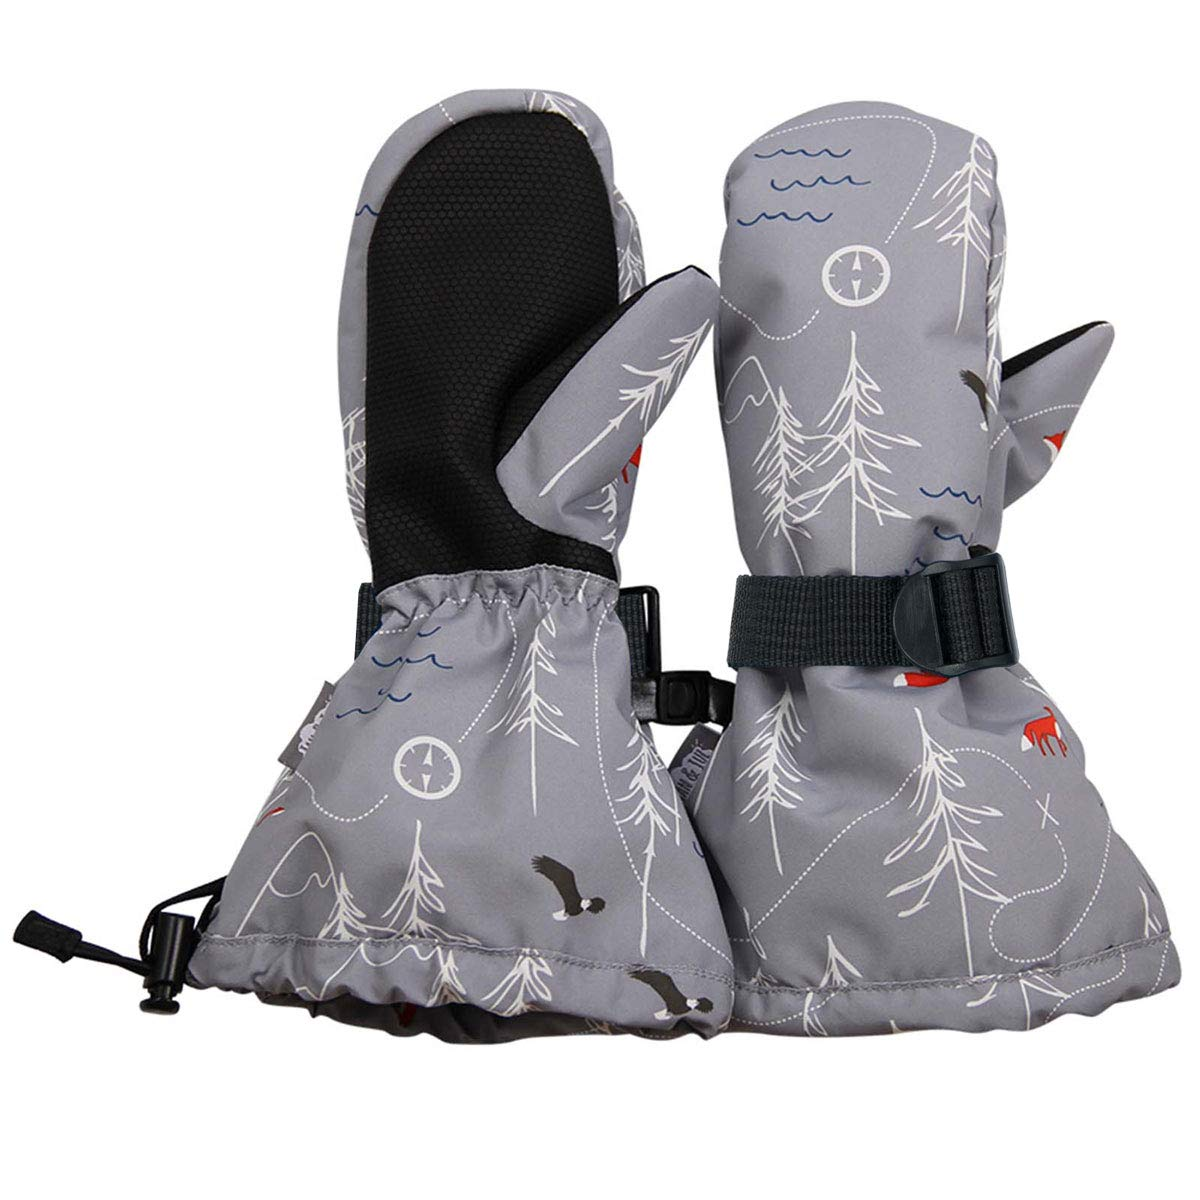 L: 6-8Y: Navy Jan /& Jul Waterproof Stay-on Winter Snow and Ski Mittens Fleece-Lined for Baby Toddler Kids Girls and Boys